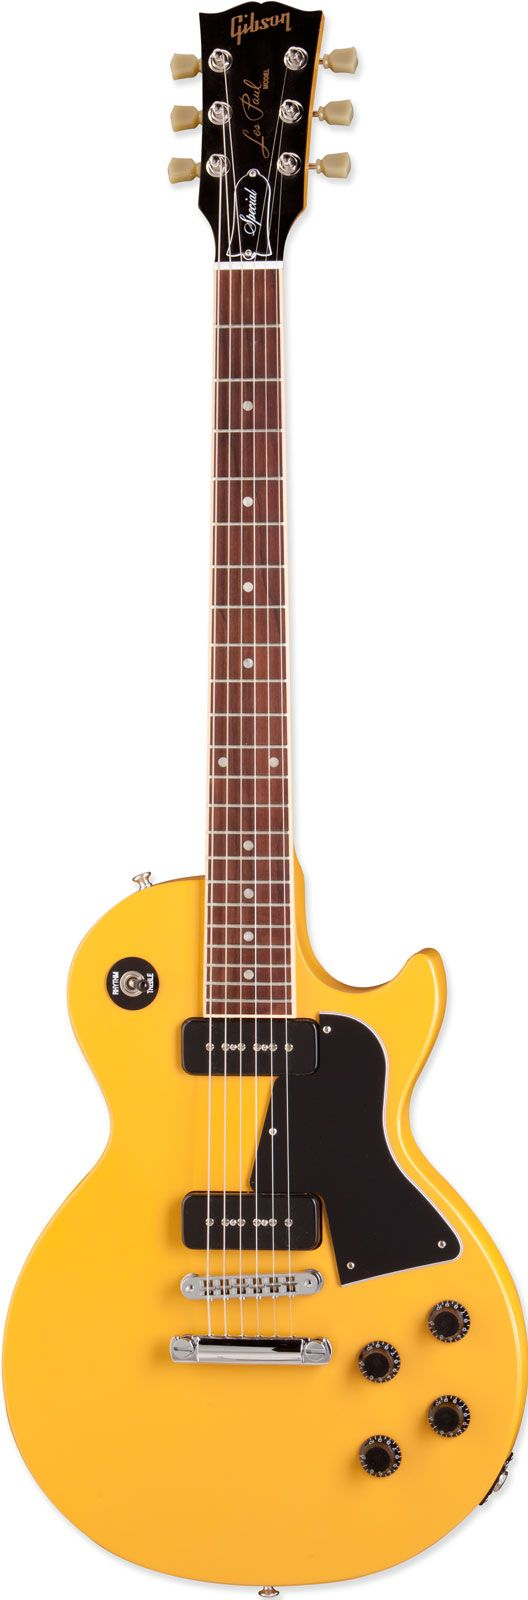 Gibson Les Paul Junior Special P90 Satin Yellow electric guitar